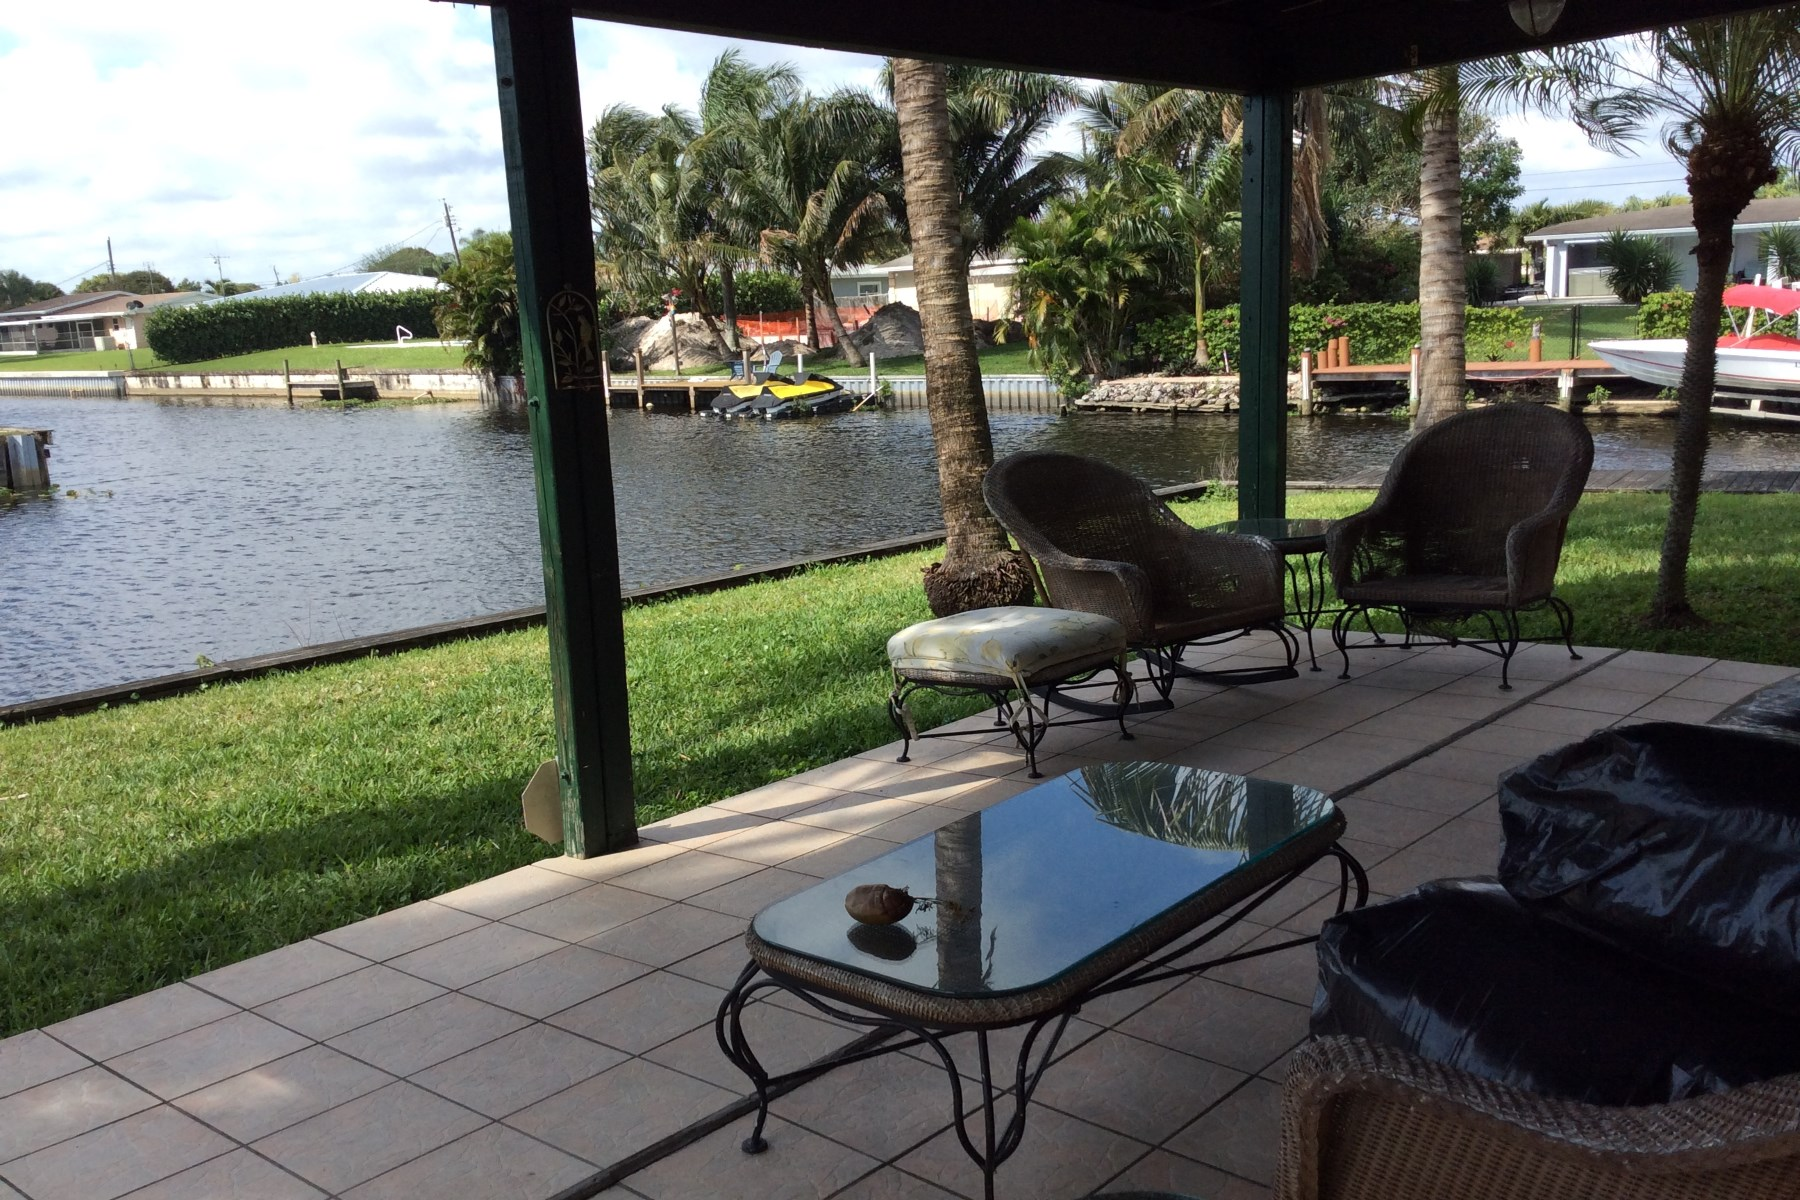 Single Family Home for Sale at Great Waterfront Home on a Wide Canal 2098 Palmetto Rd West Palm Beach, Florida, 33406 United States